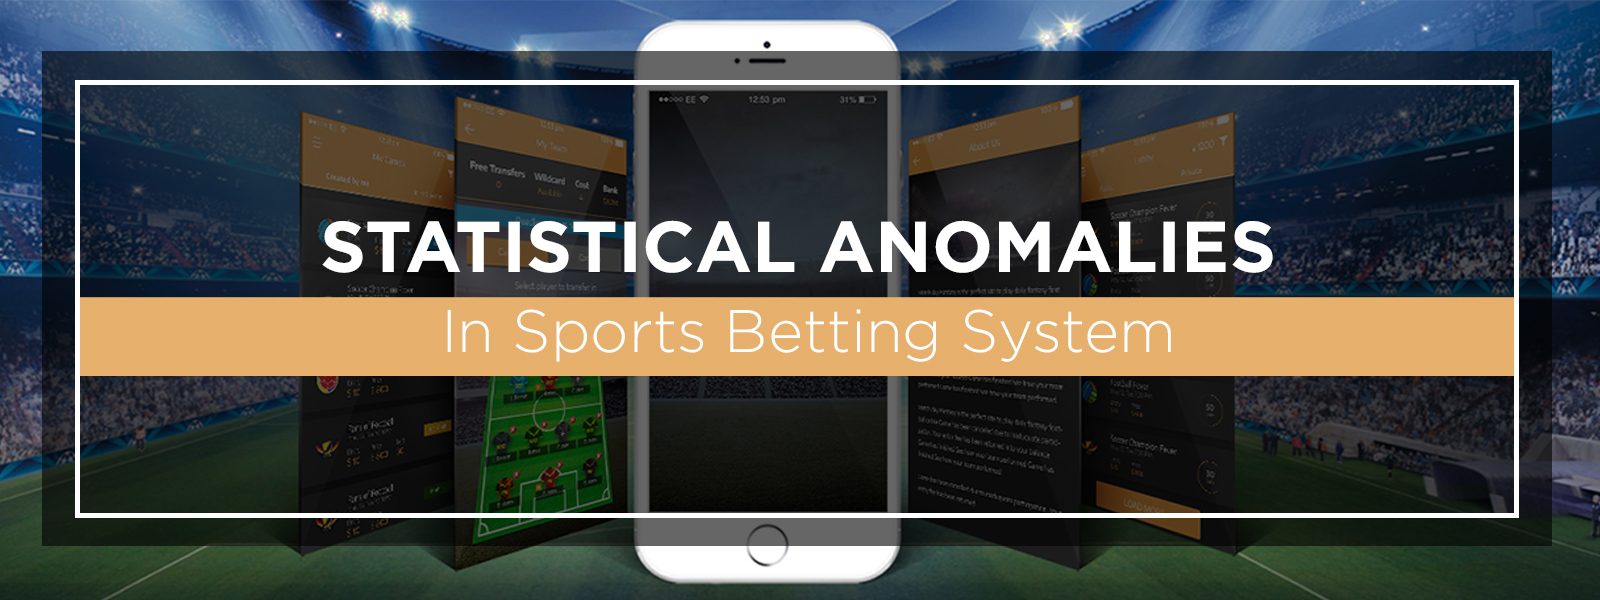 Statistical Anomalies In Sports Betting System